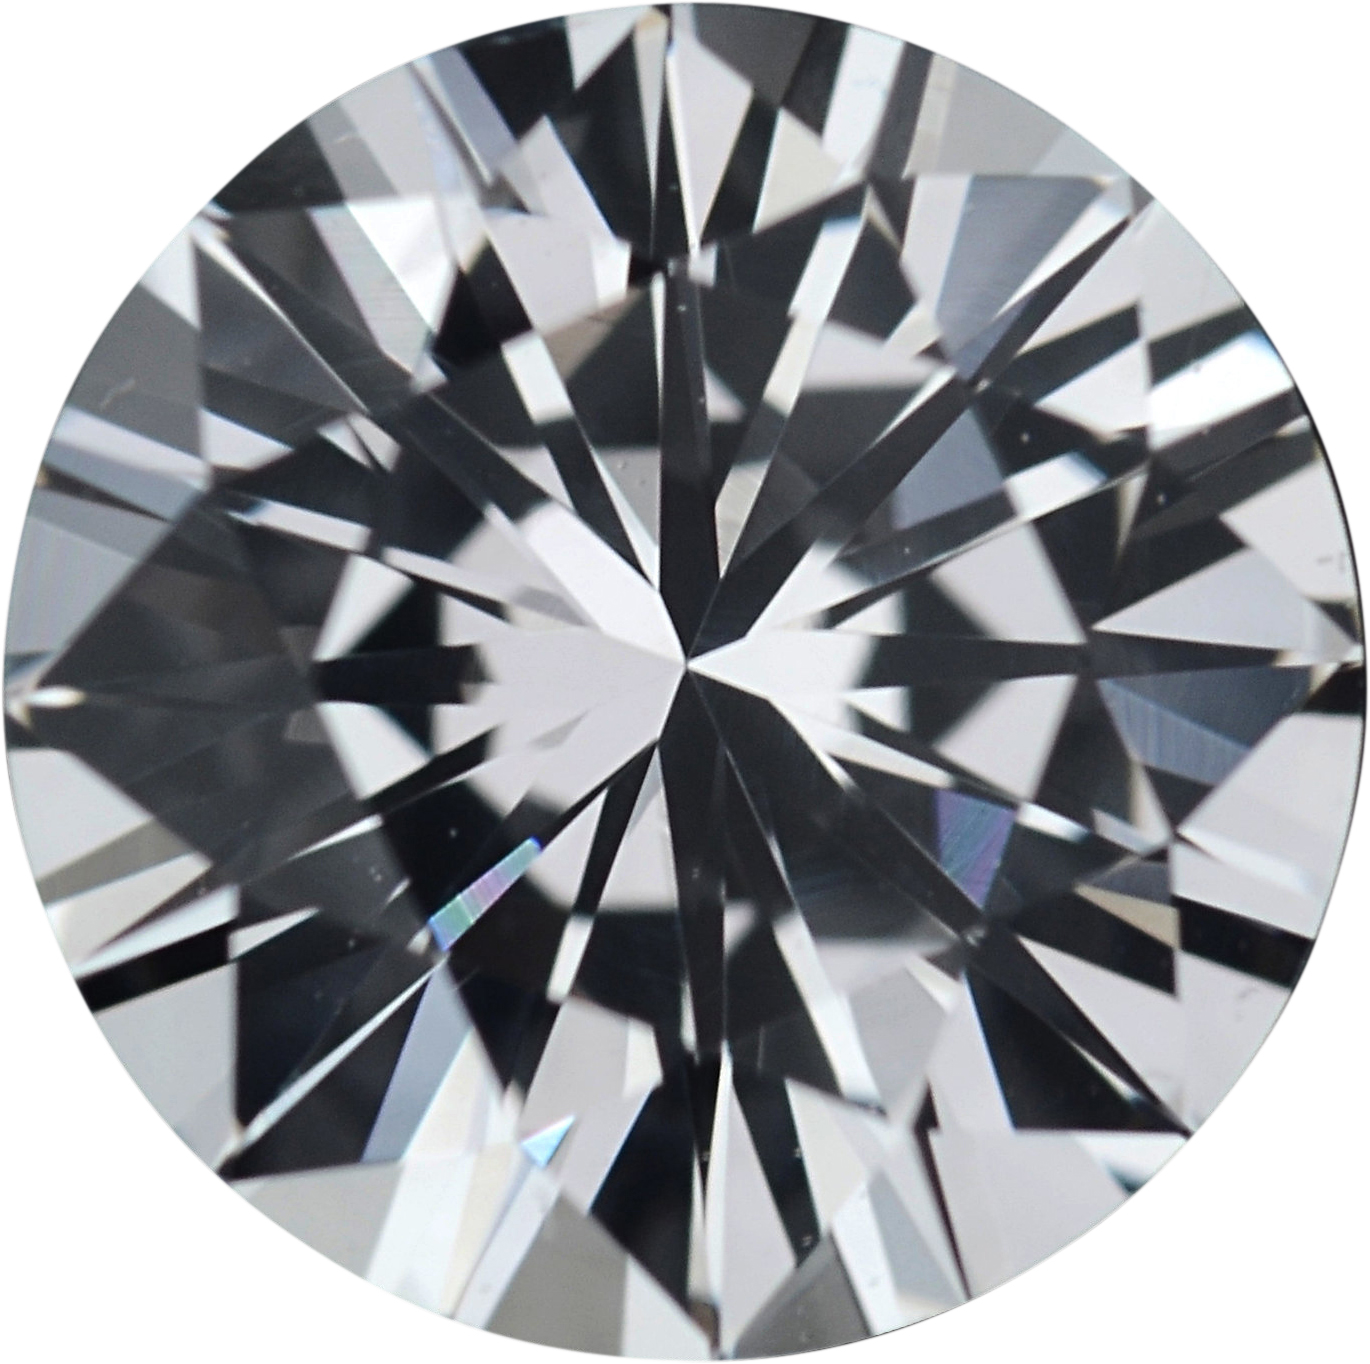 1.45 carats White Loose Sapphire Gemstone in Round Cut, 6.97 mm